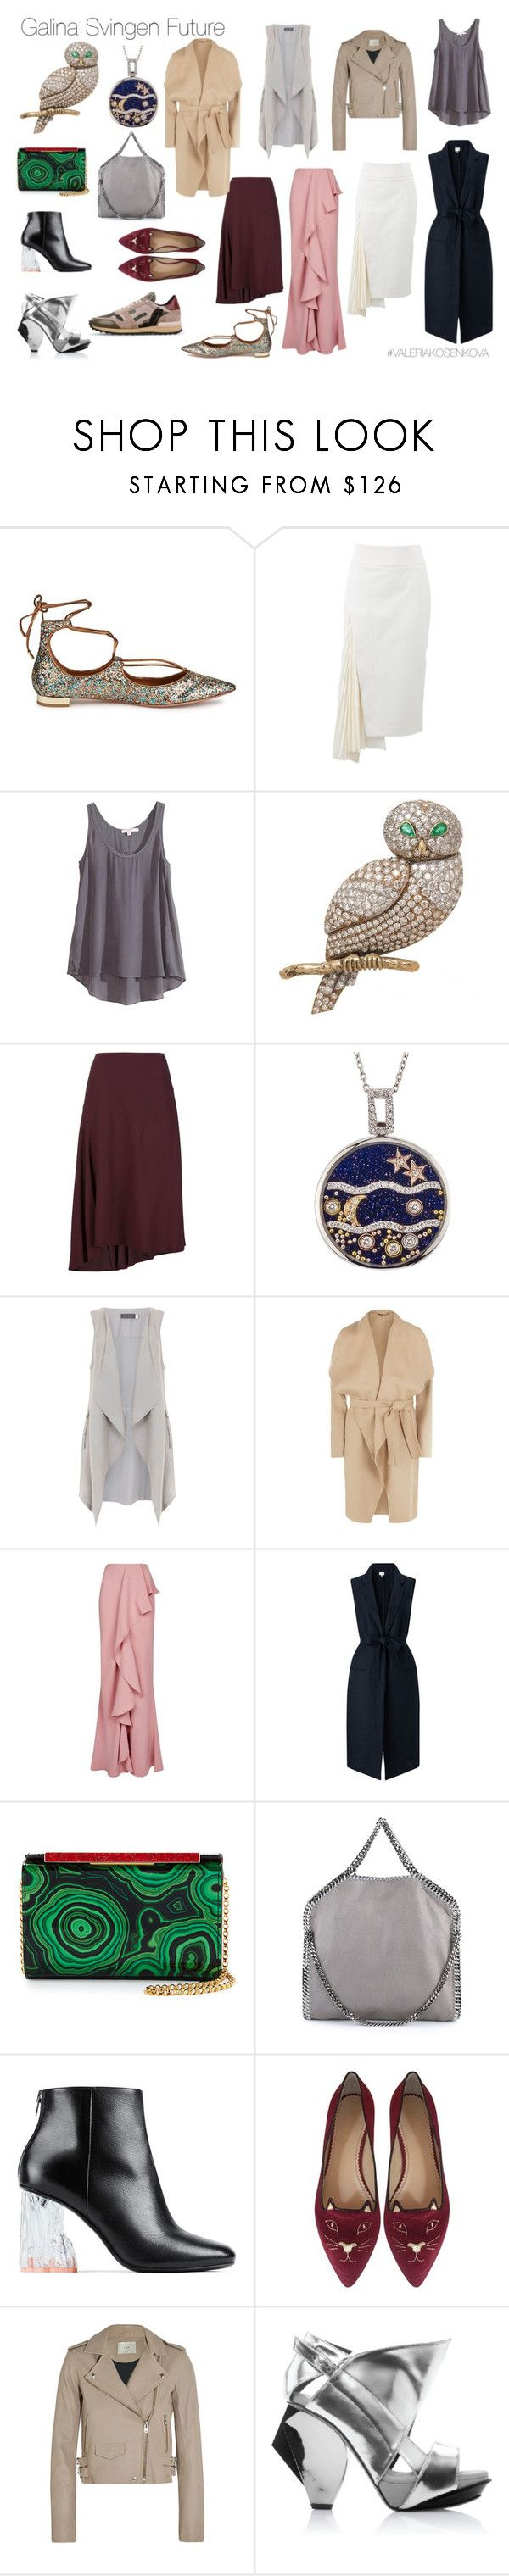 GS Future by m-elle-v on Polyvore featuring мода, Calypso St. Barth, BOSS Hugo Boss, IRO, EAST, Mint Velvet, Alexander McQueen, Marni, Brunello Cucinelli and Acne Studios